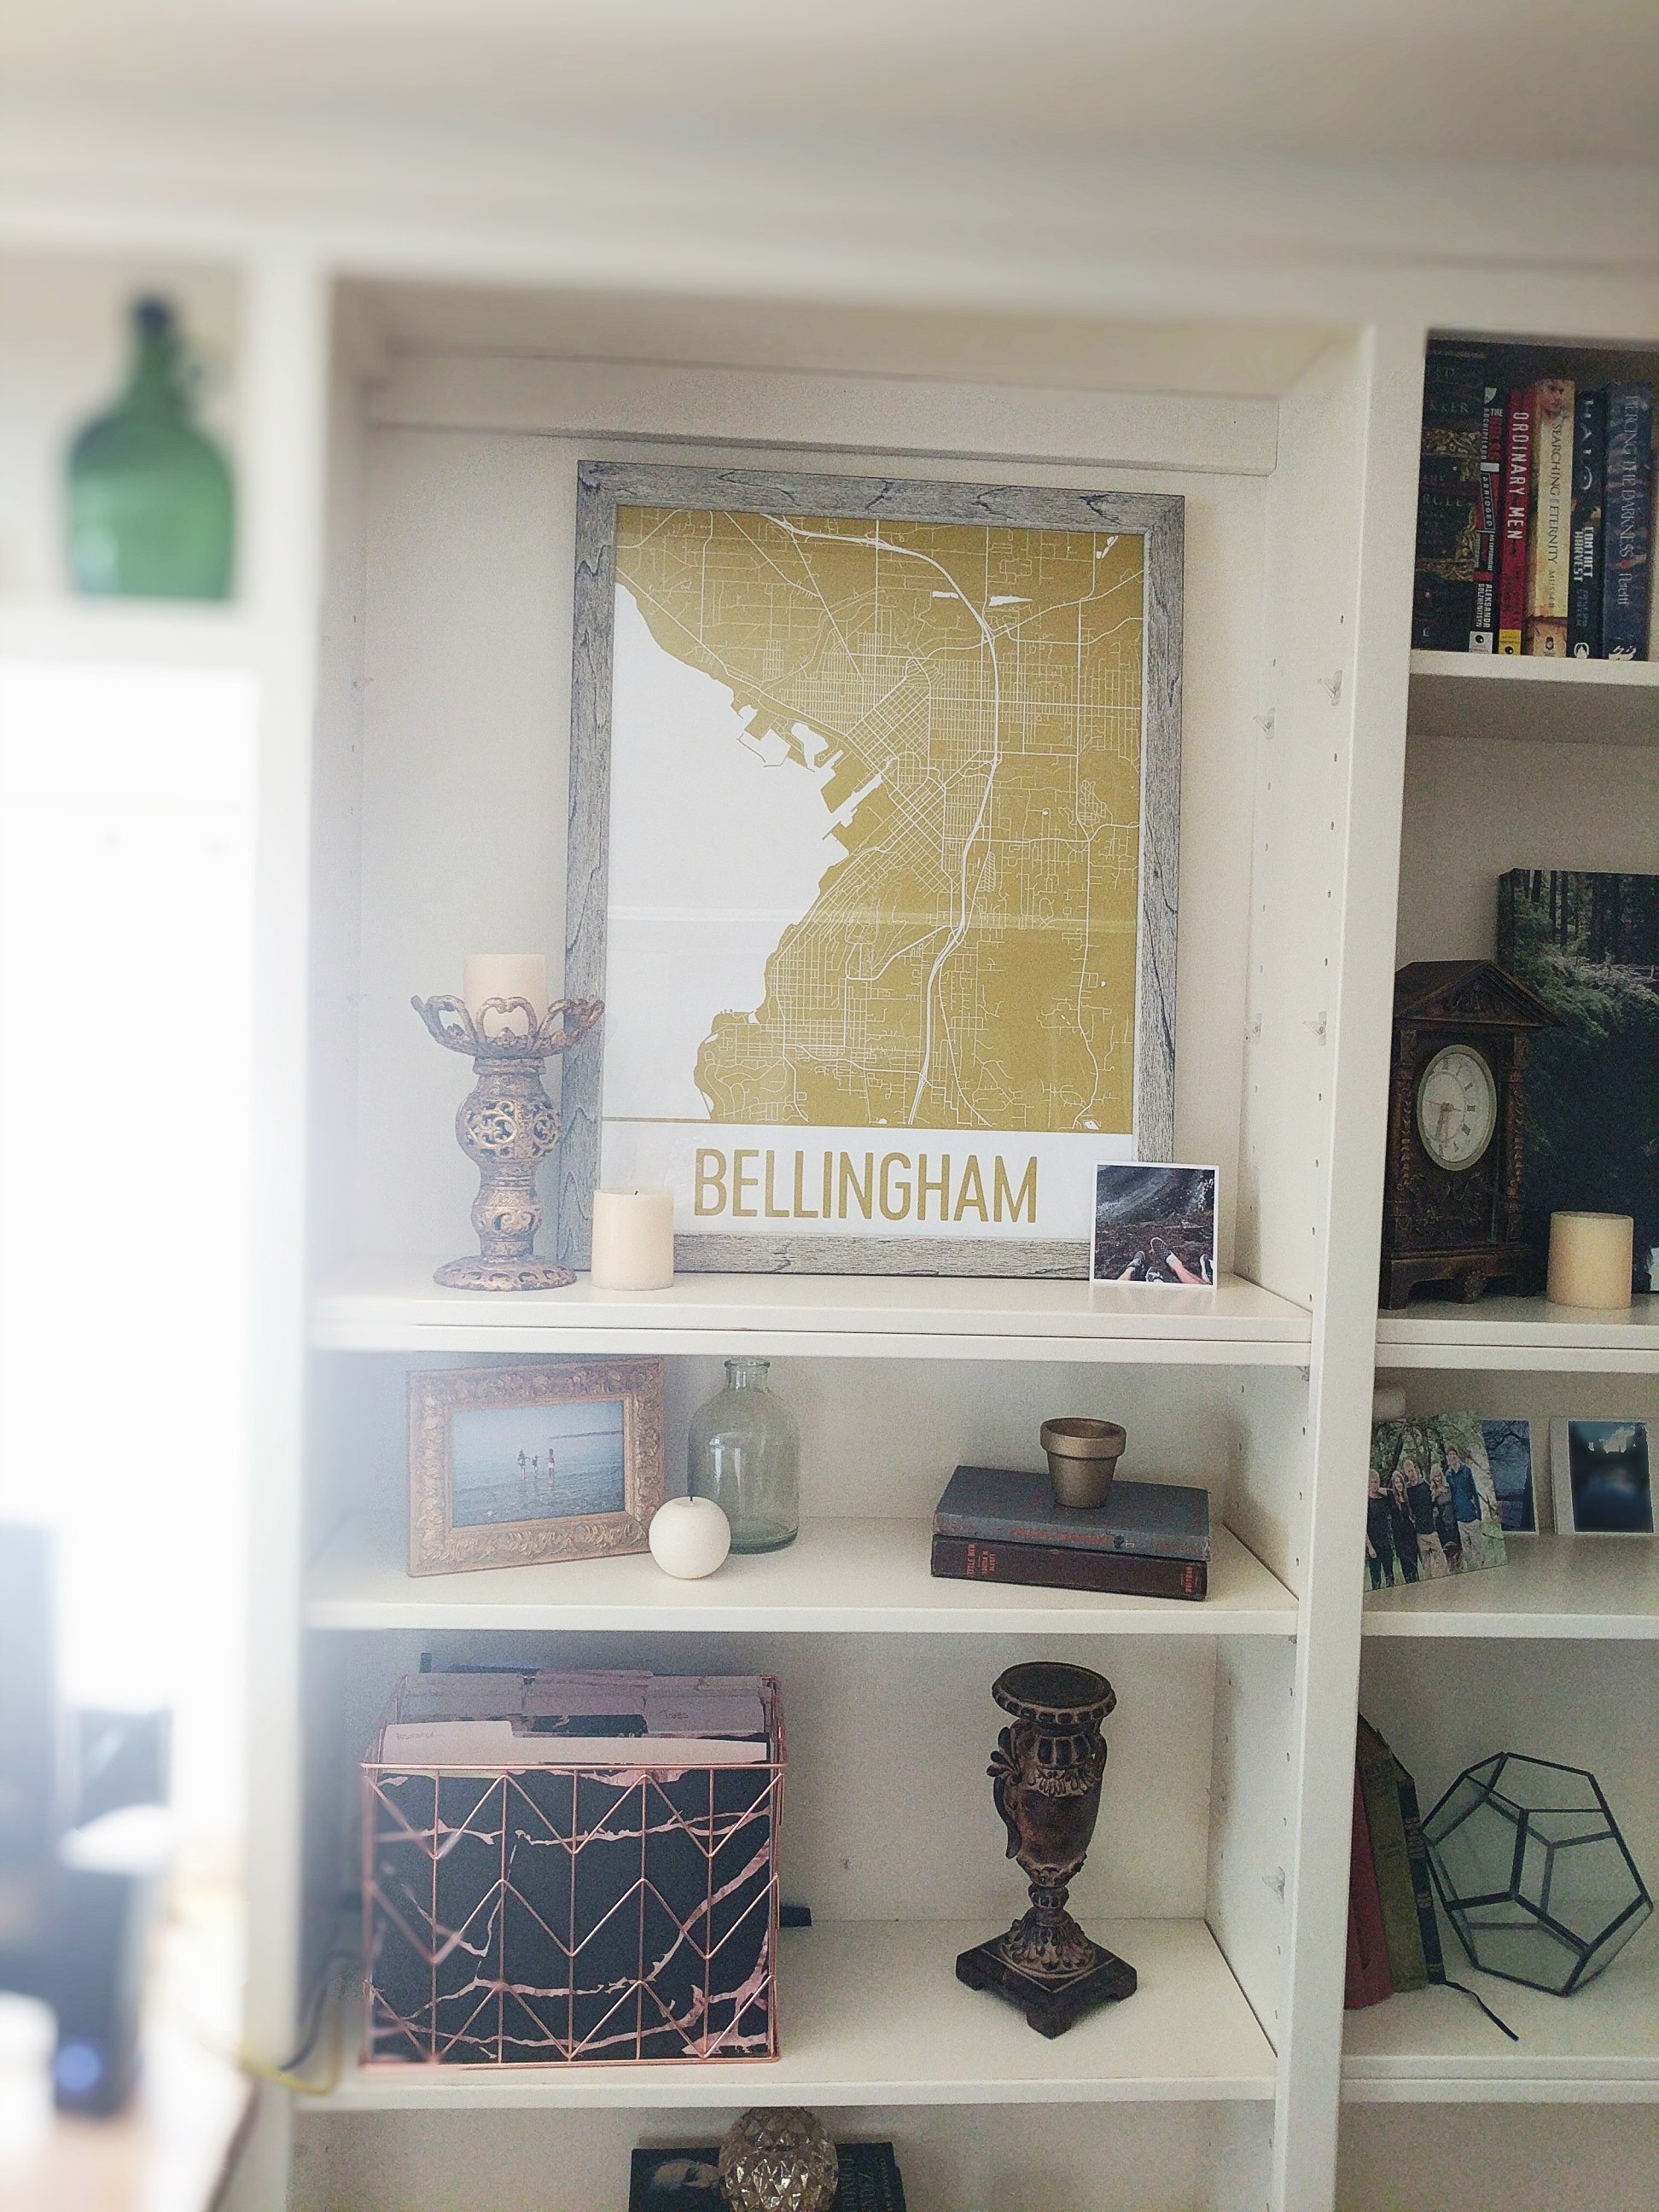 How to decorate built in shelves.